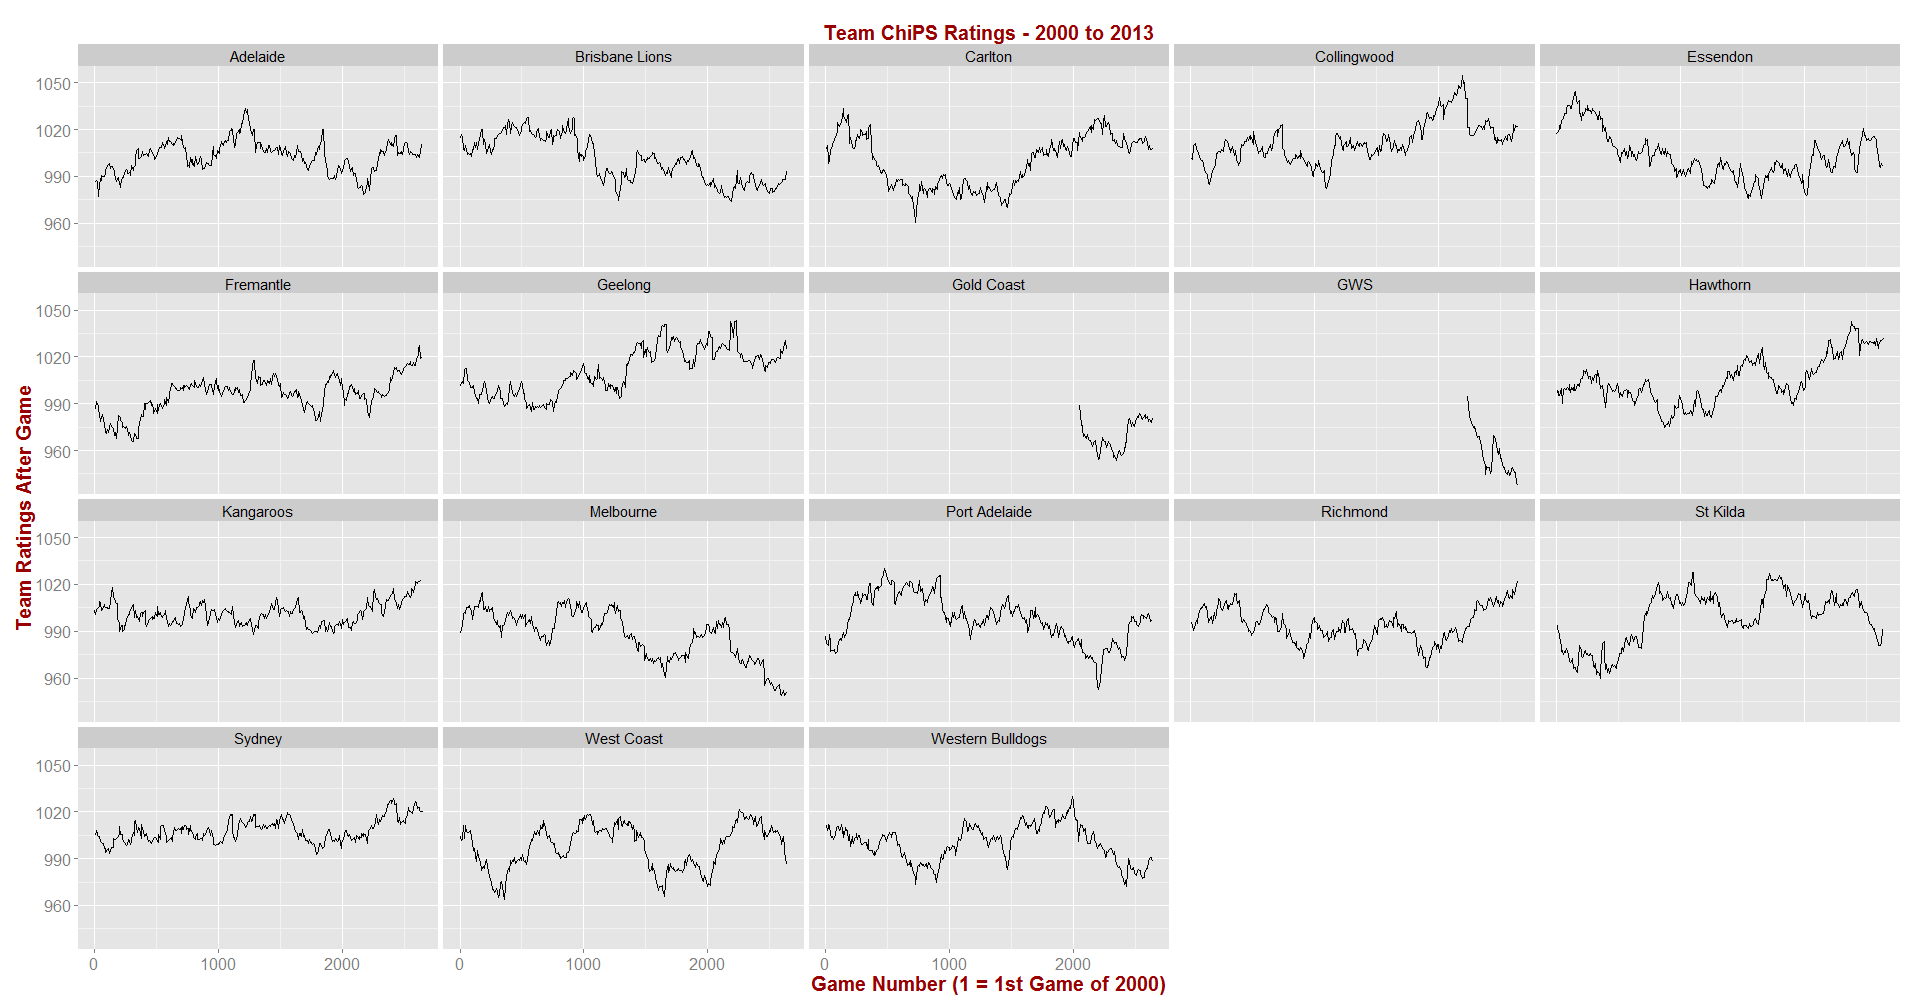 ChiPS - Rating History by Team - 2000 to 2013.png